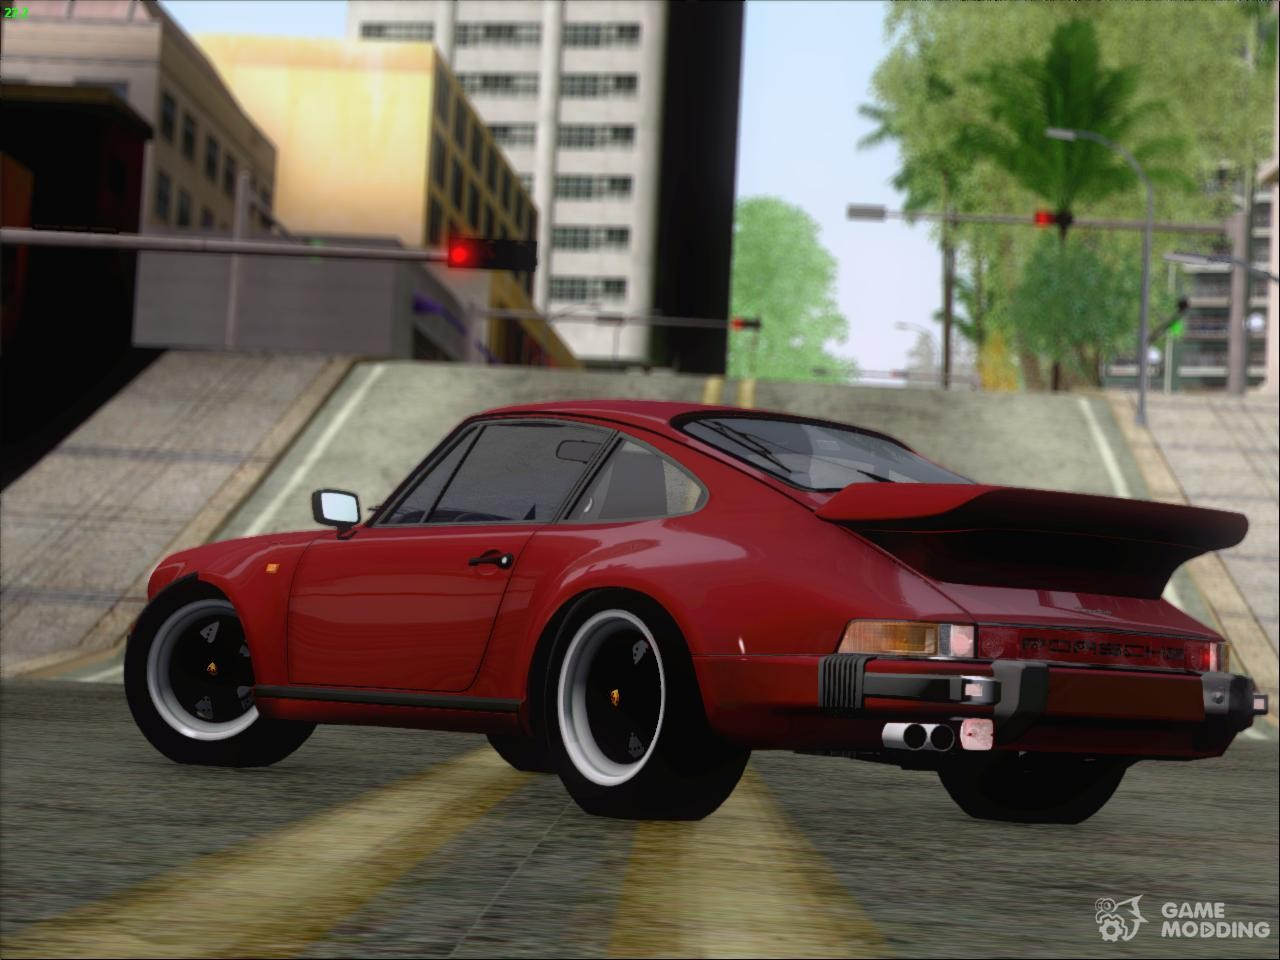 Porsche 911 turbo 930 1985 for gta san andreas porsche 911 turbo 930 1985 for gta san andreas top view vanachro Image collections